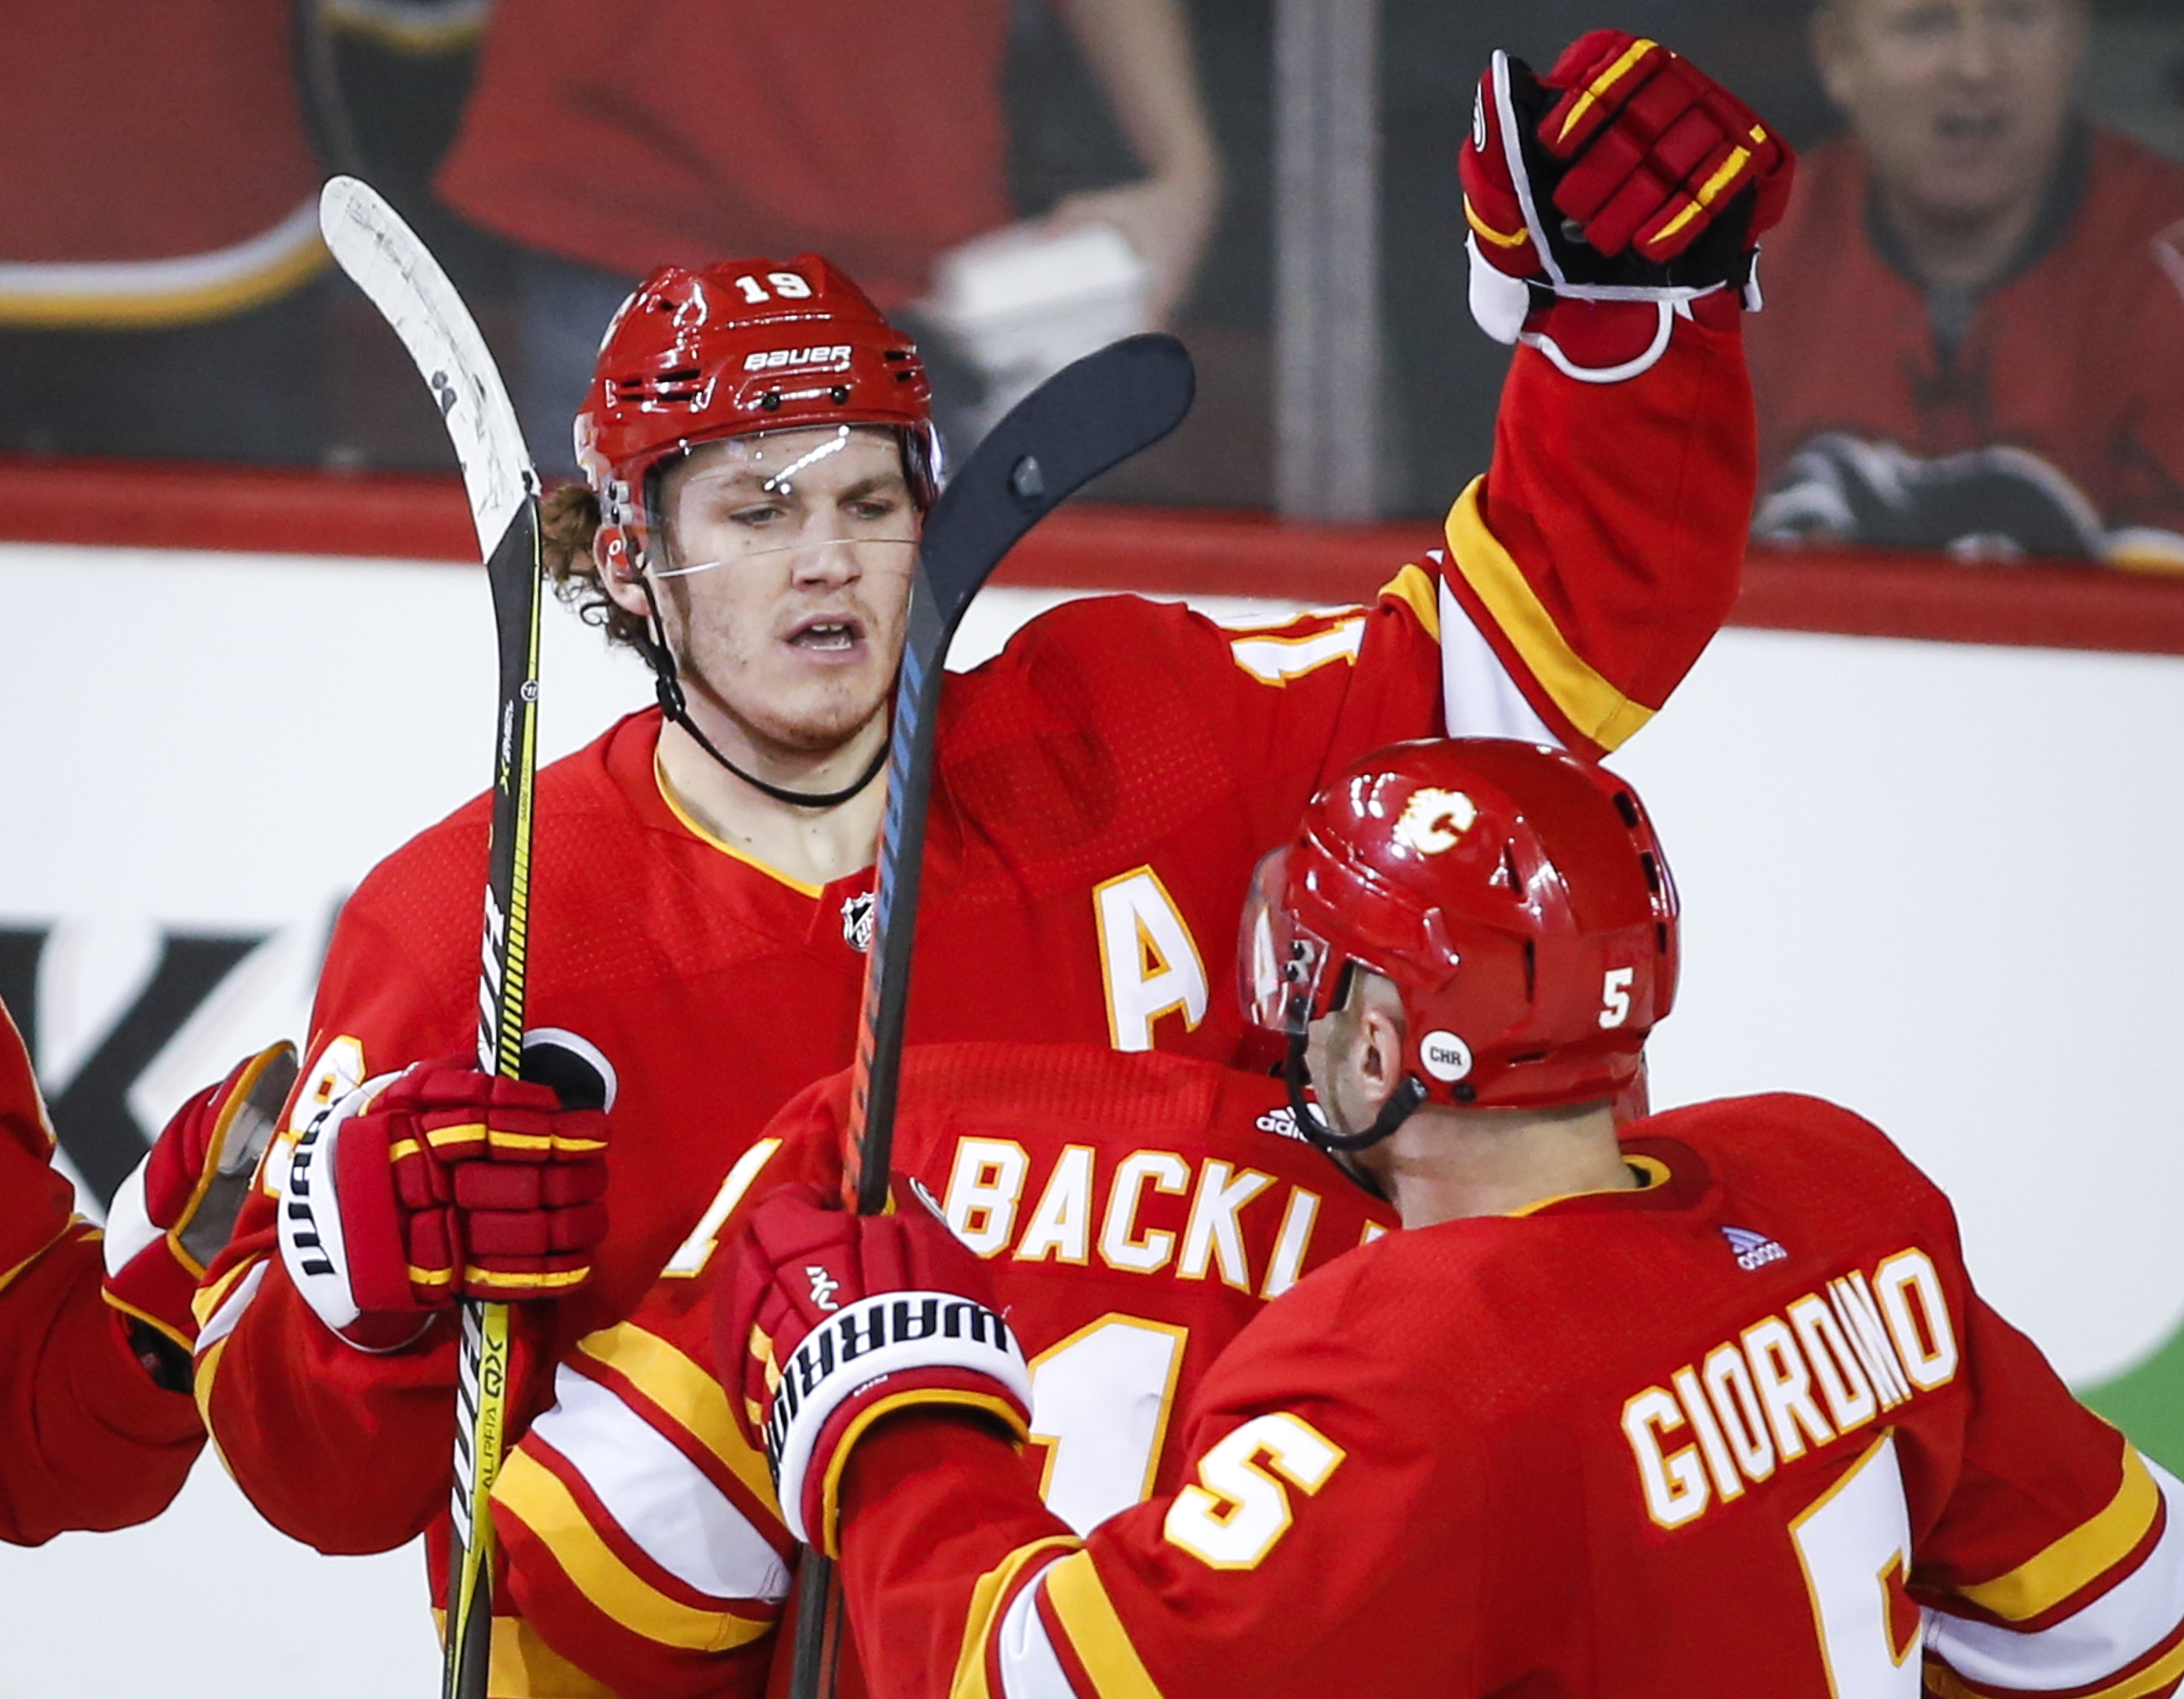 Tkachuk's 5-point game leads Flames past Rangers 5-1